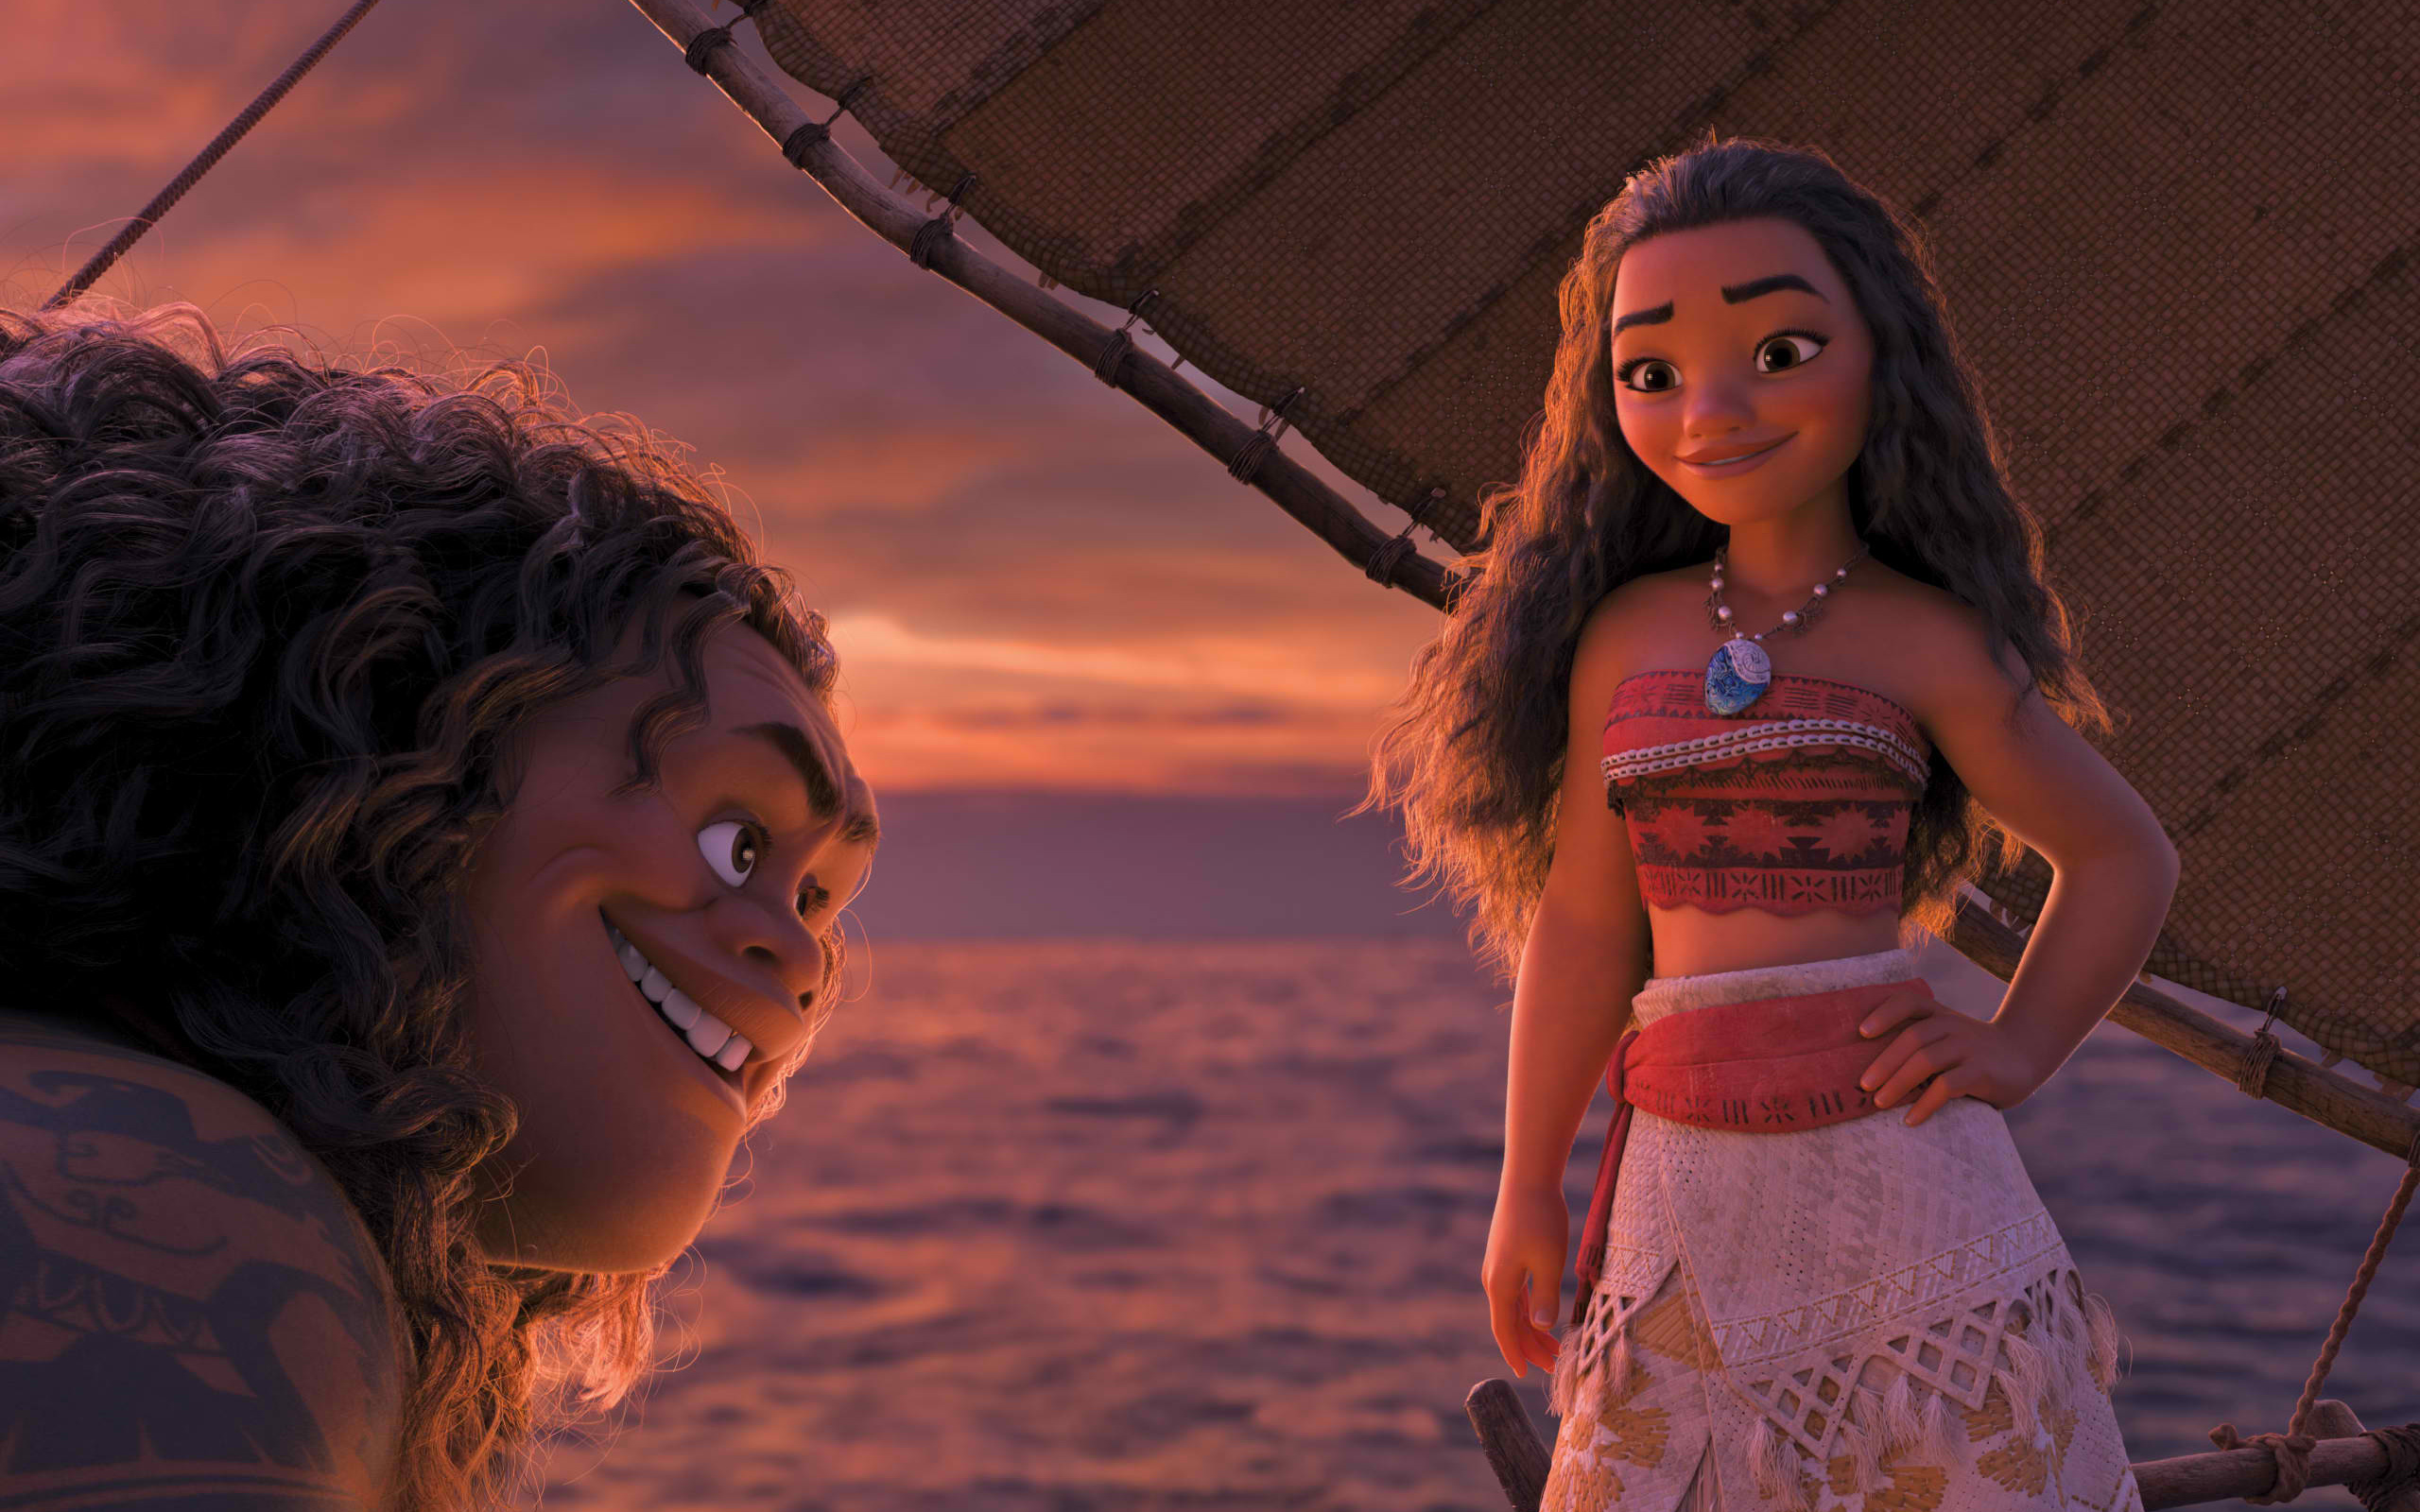 moana movie wallpaper background hd 184